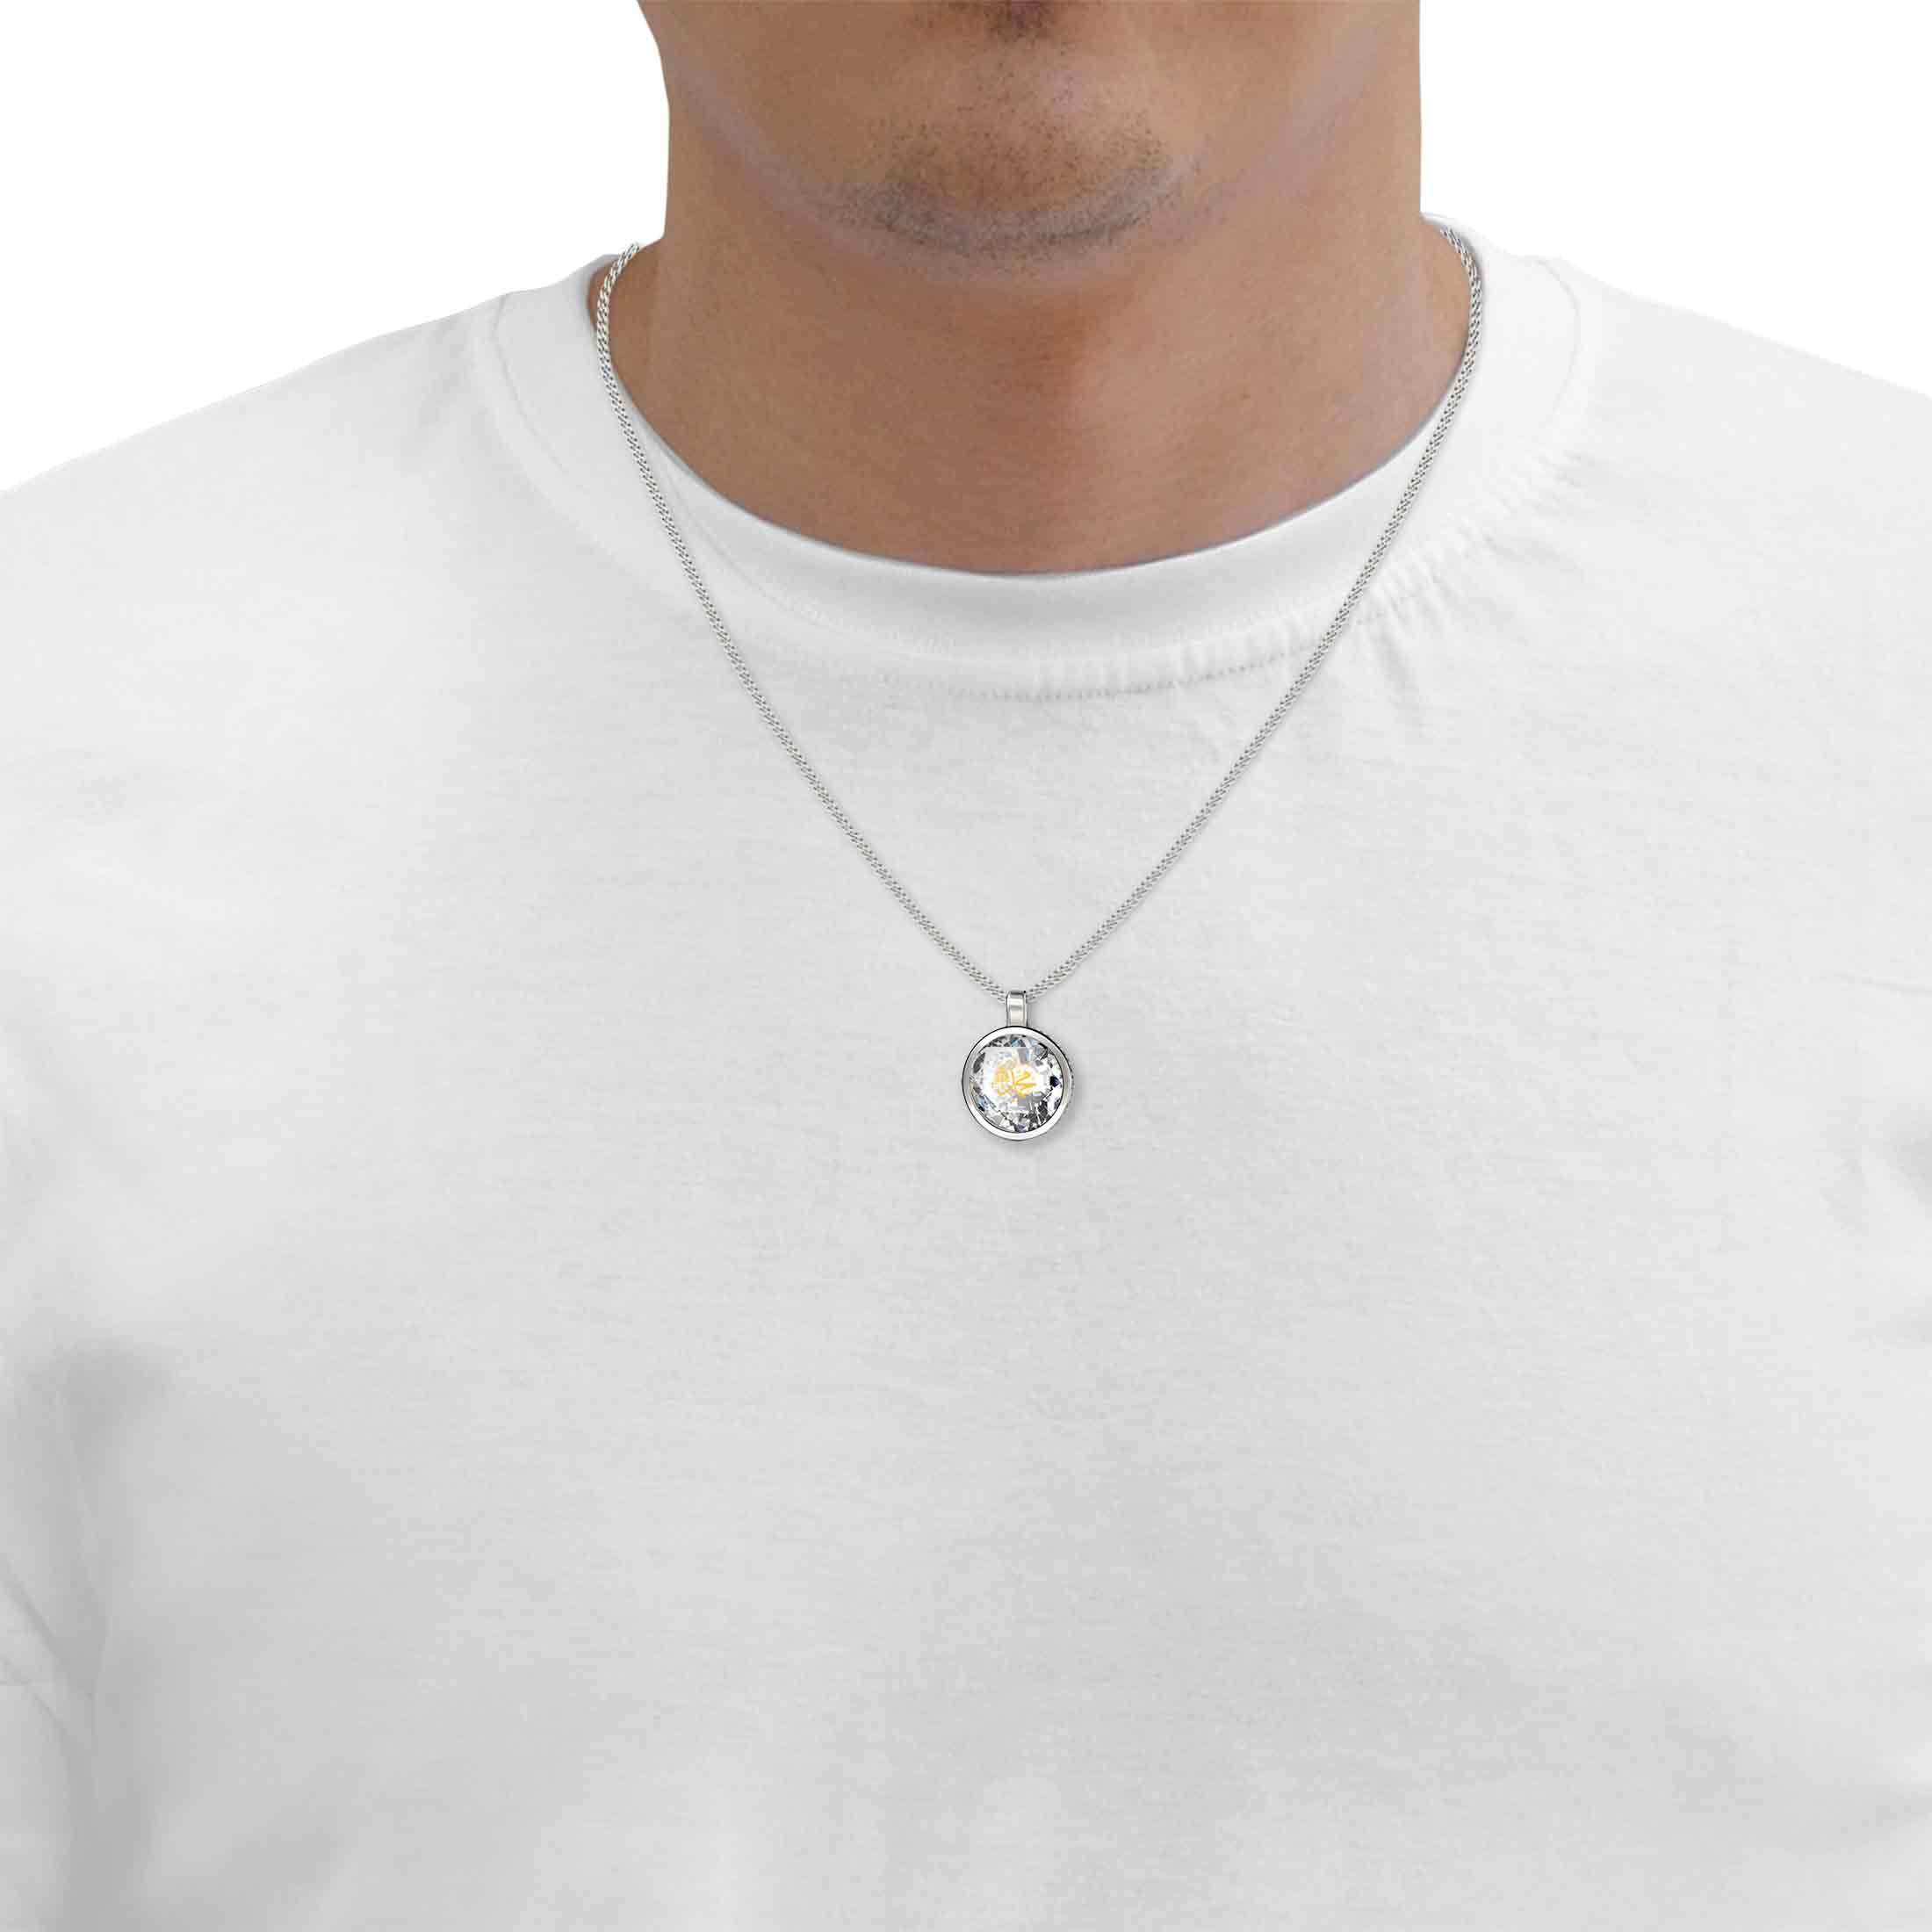 Arabic Necklace for Men, Nano Jewelry